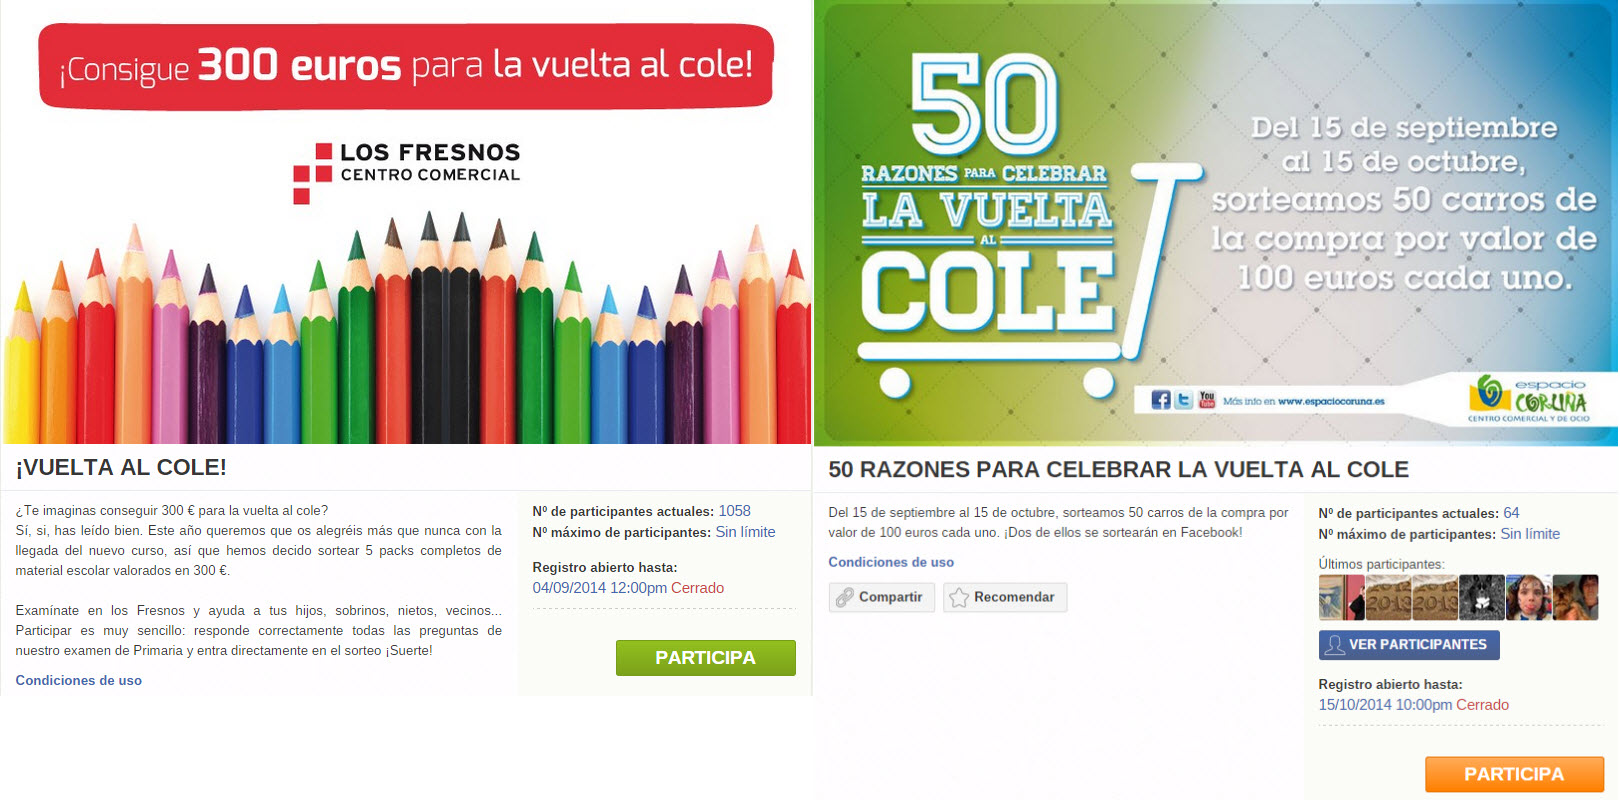 Back to School campaign ideas: screenshots from two coupon promotions